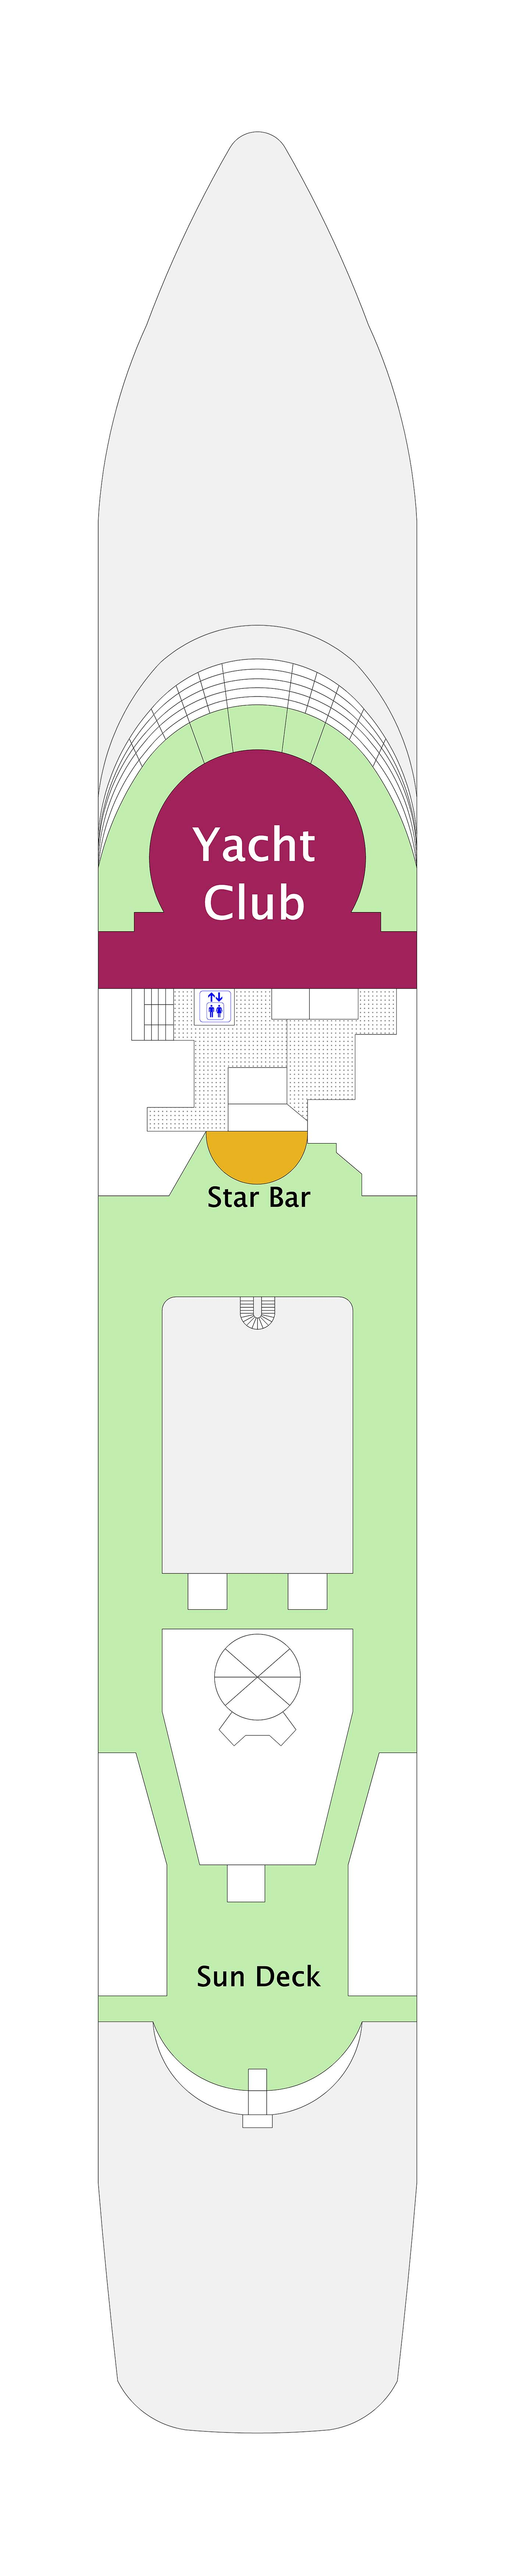 Star Breeze deck plan 8